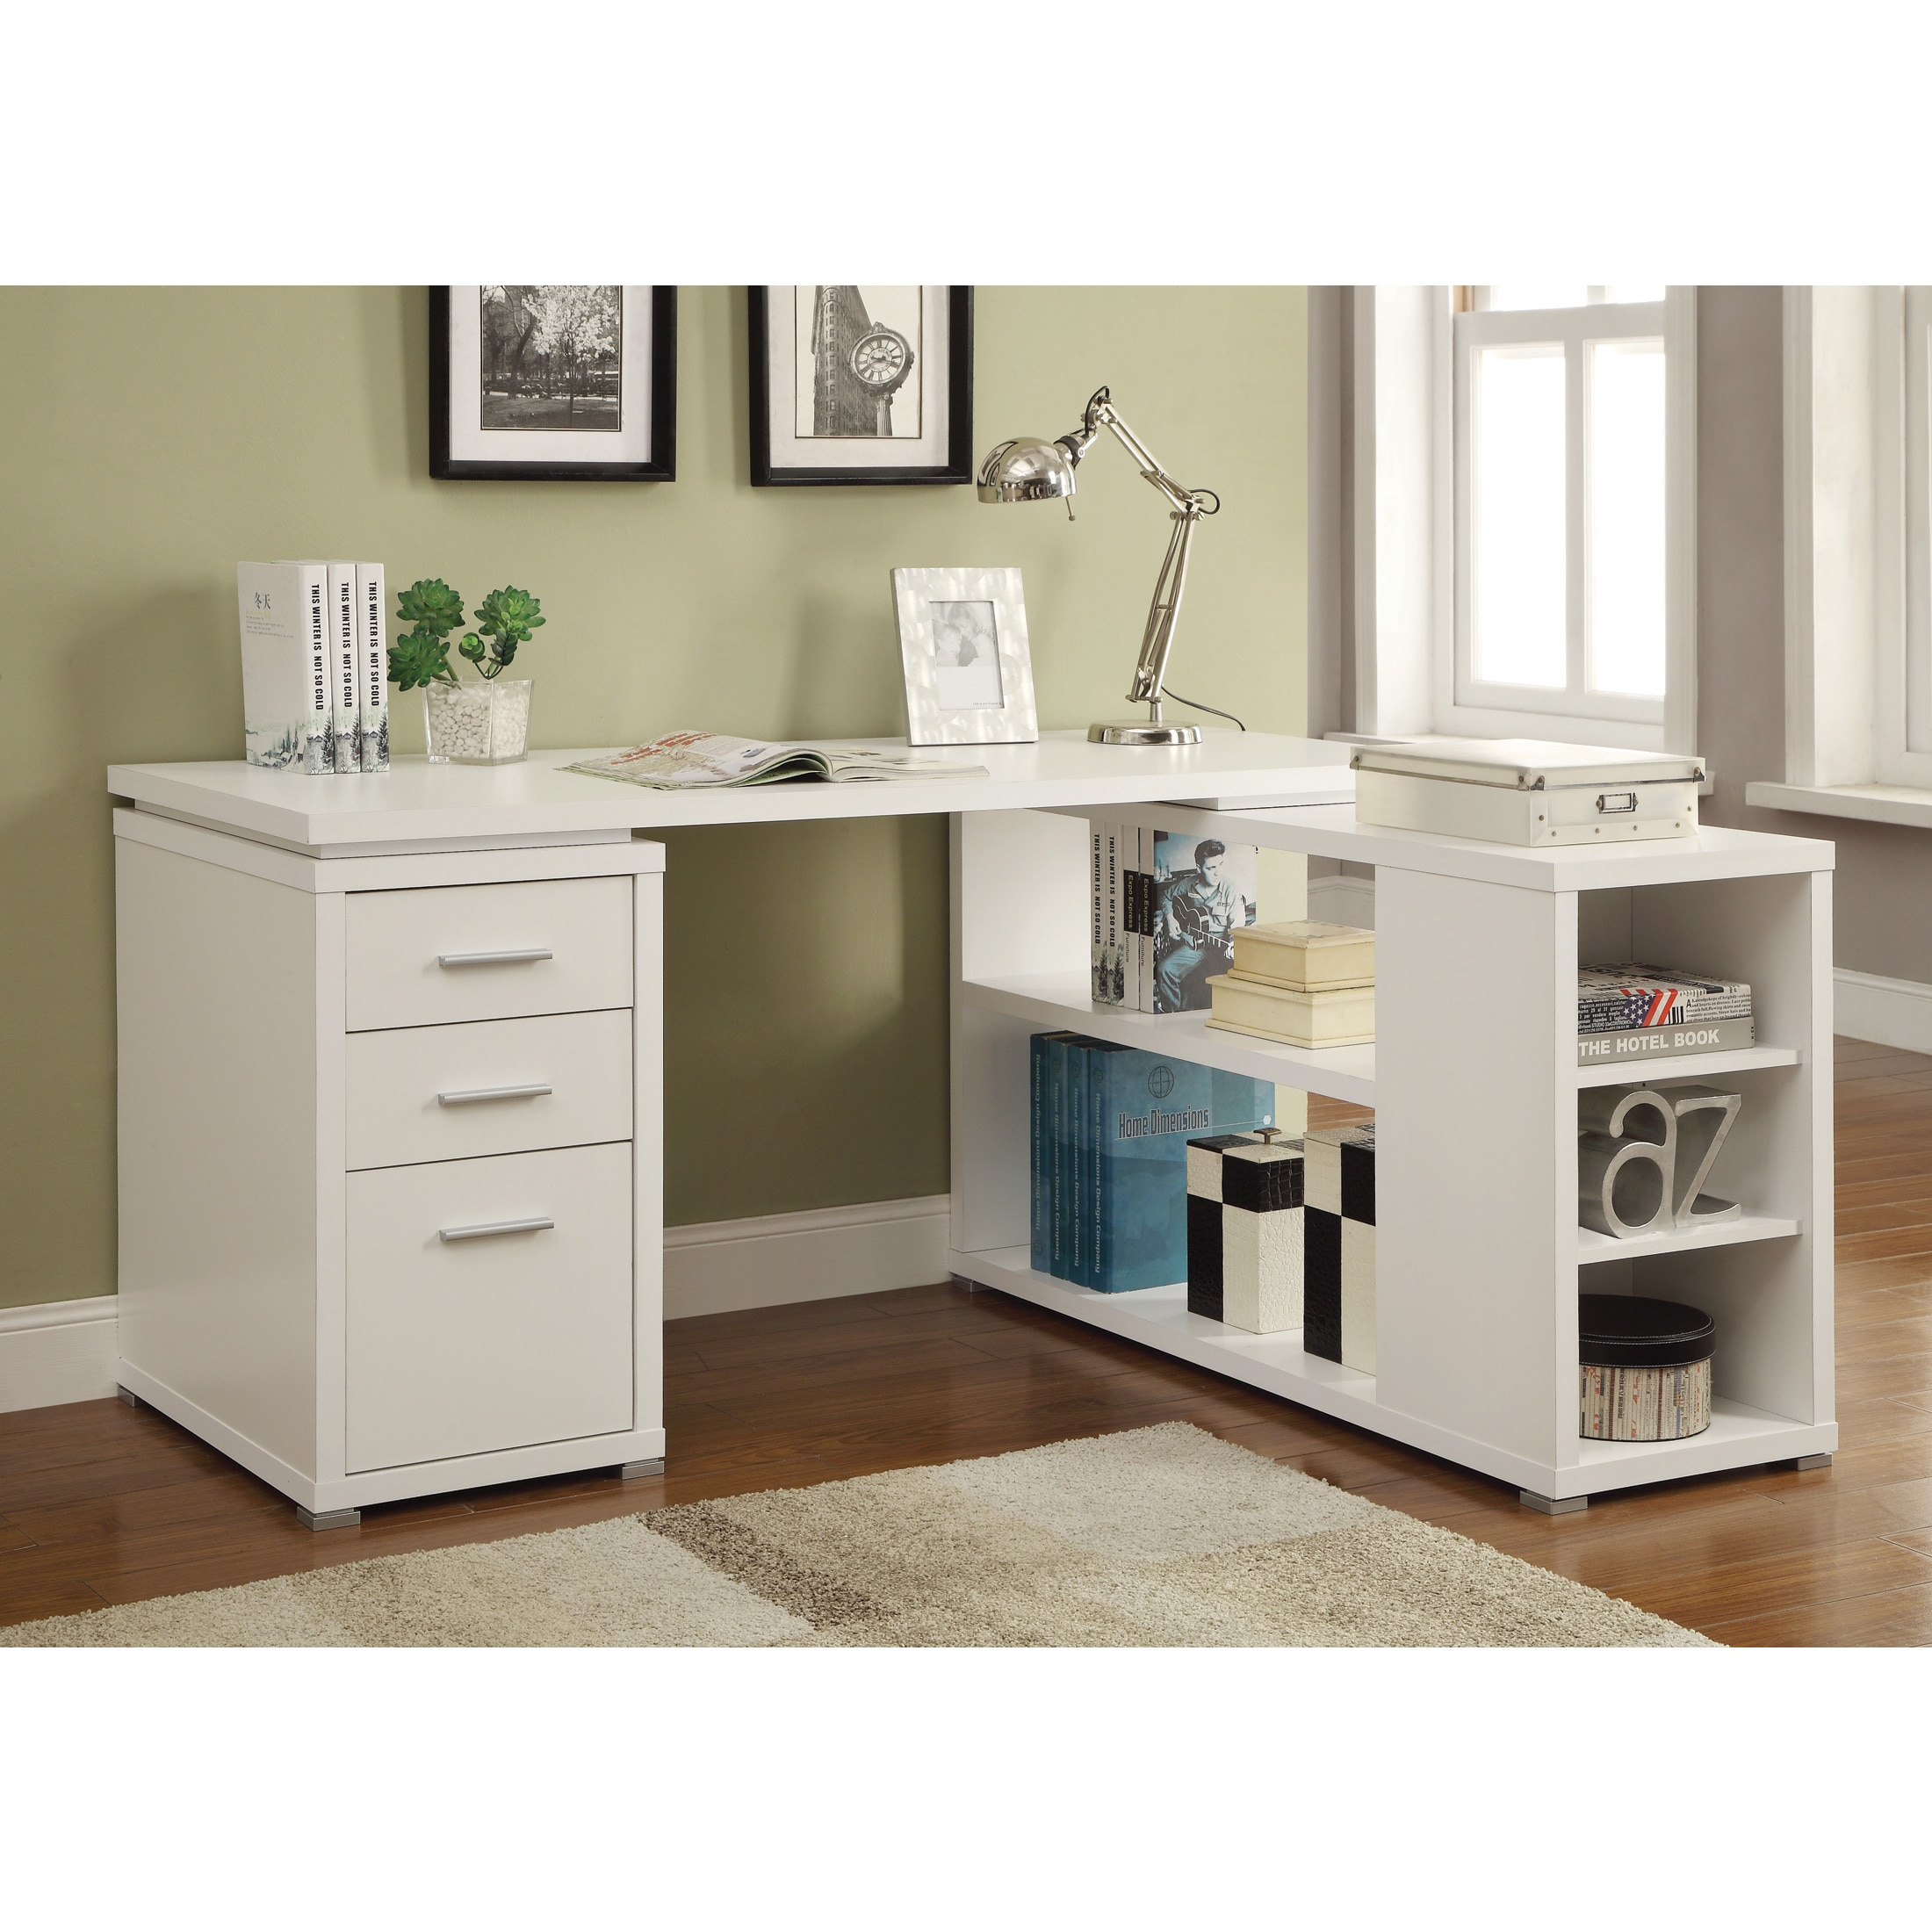 Reversible Shape Office Desk And Bookcase Set E Be Jpg 2200x2200 Chaseoftanks Oasis Ffxiv